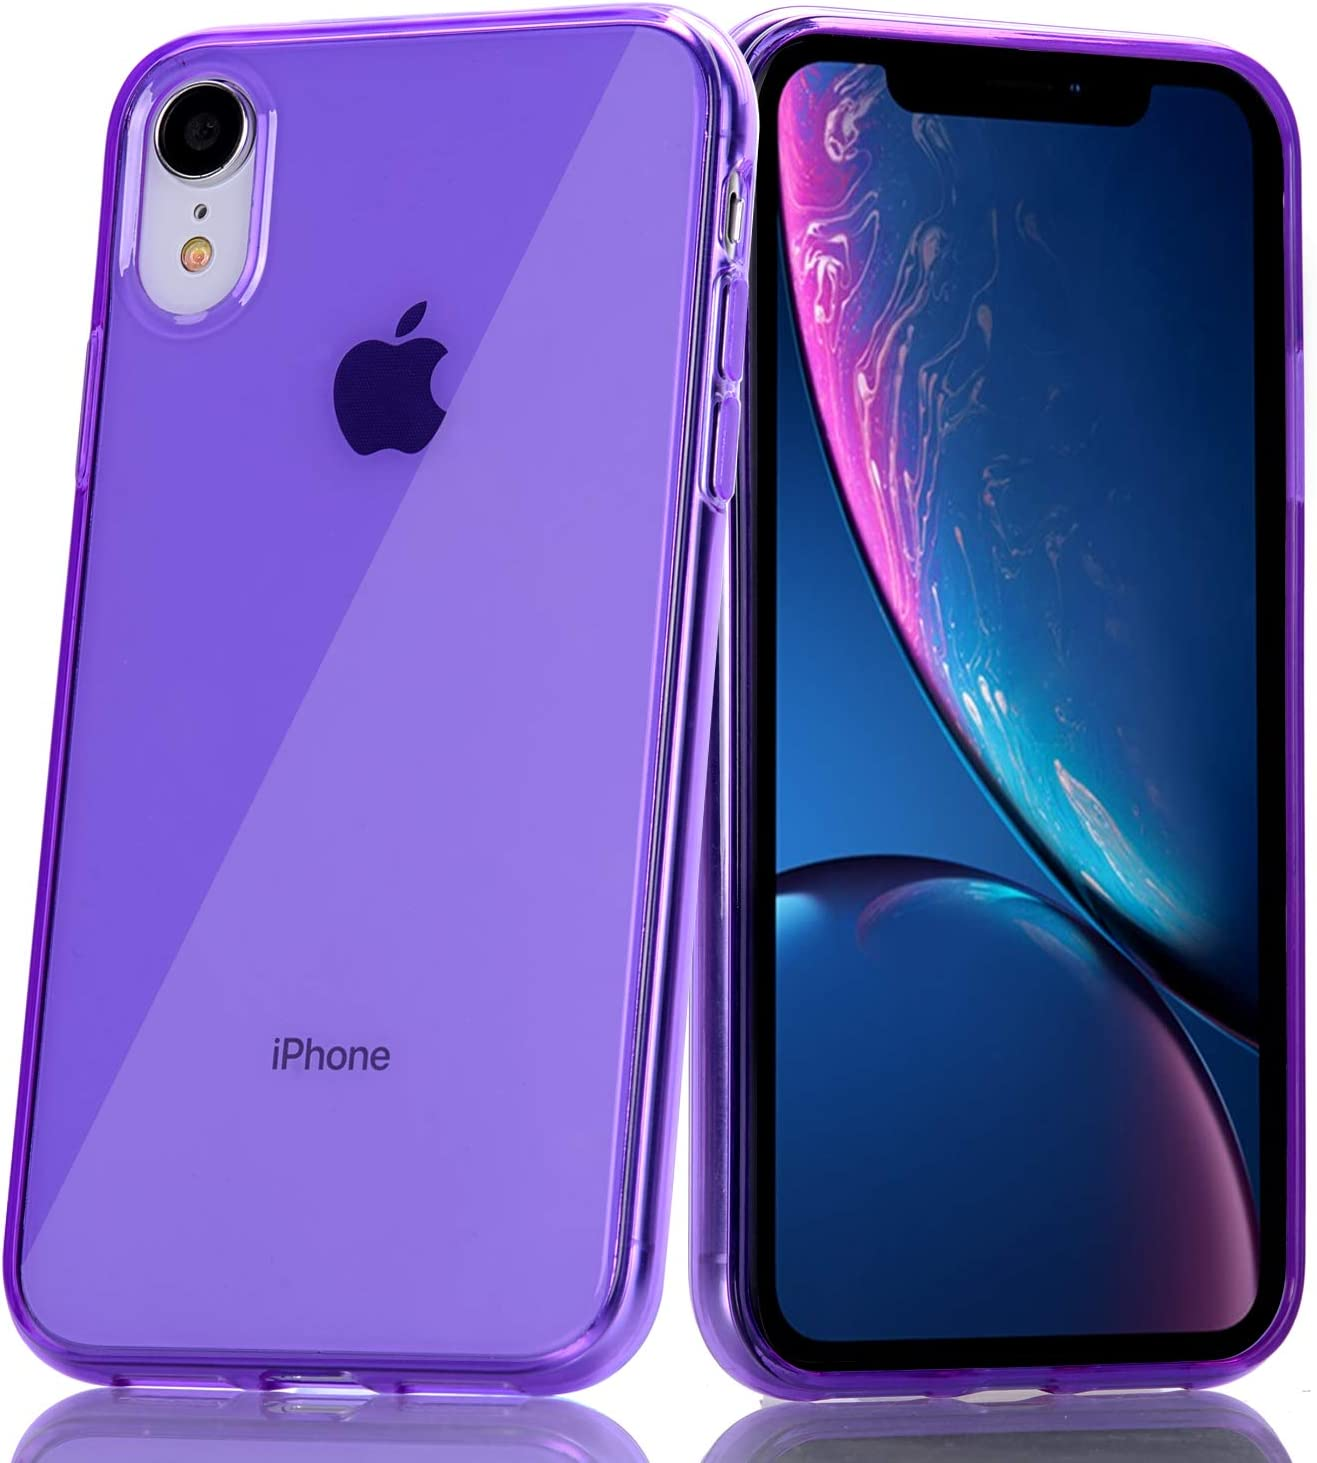 BAISRKE Clear Case for iPhone XR, Slim Fit Soft Flexible TPU Gel Silicone Glossy Rubber Bumper Compatible with iPhone XR [Purple]